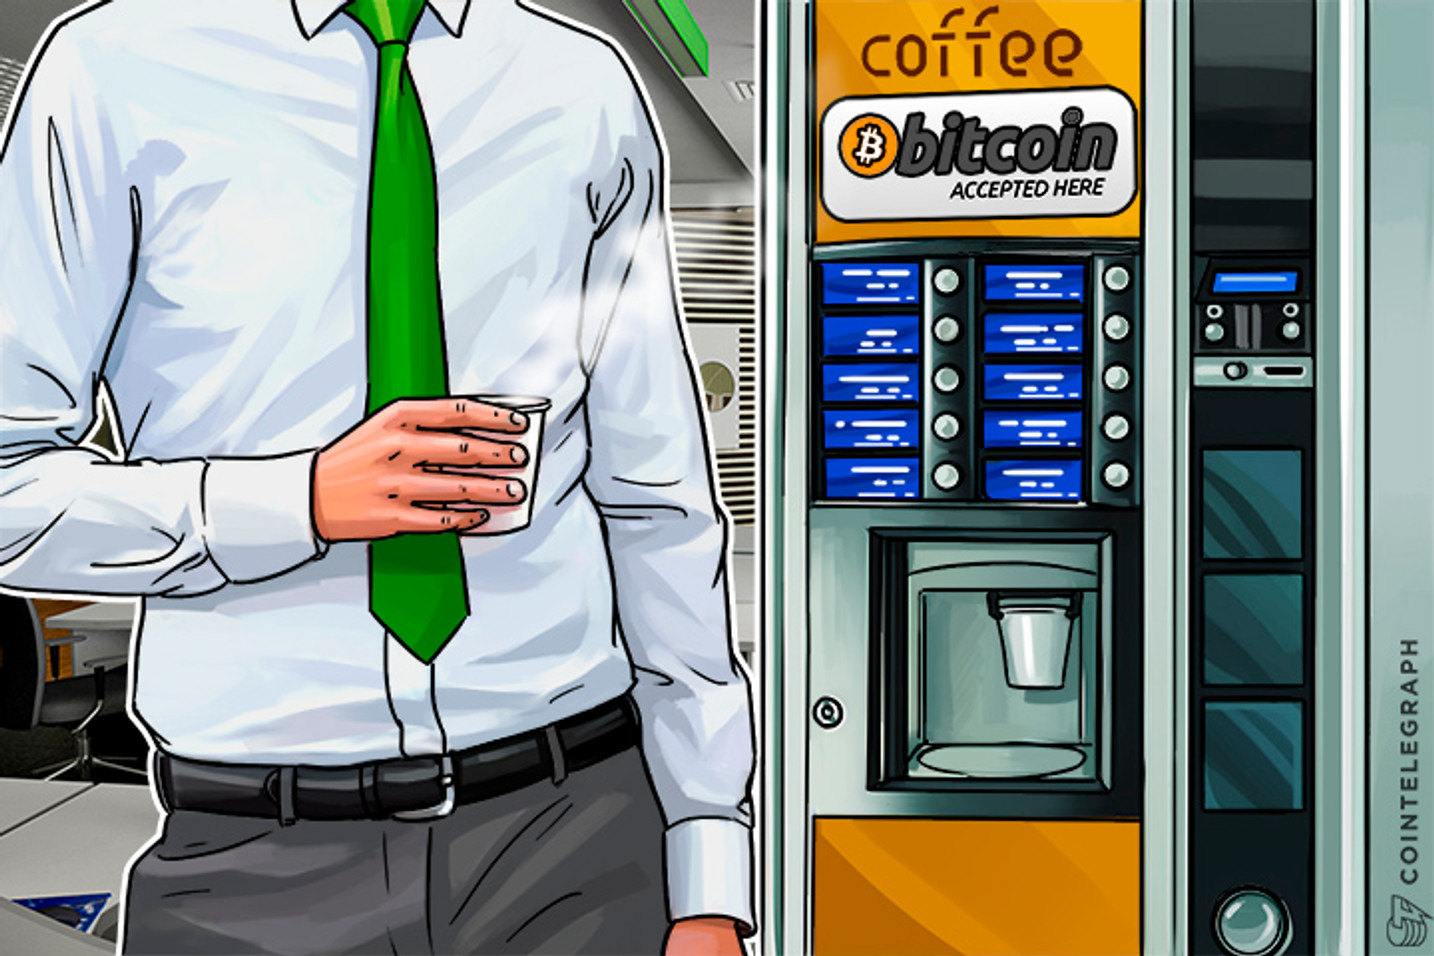 Russia's Largest State-Owned Bank's Cafe Accepts Bitcoin